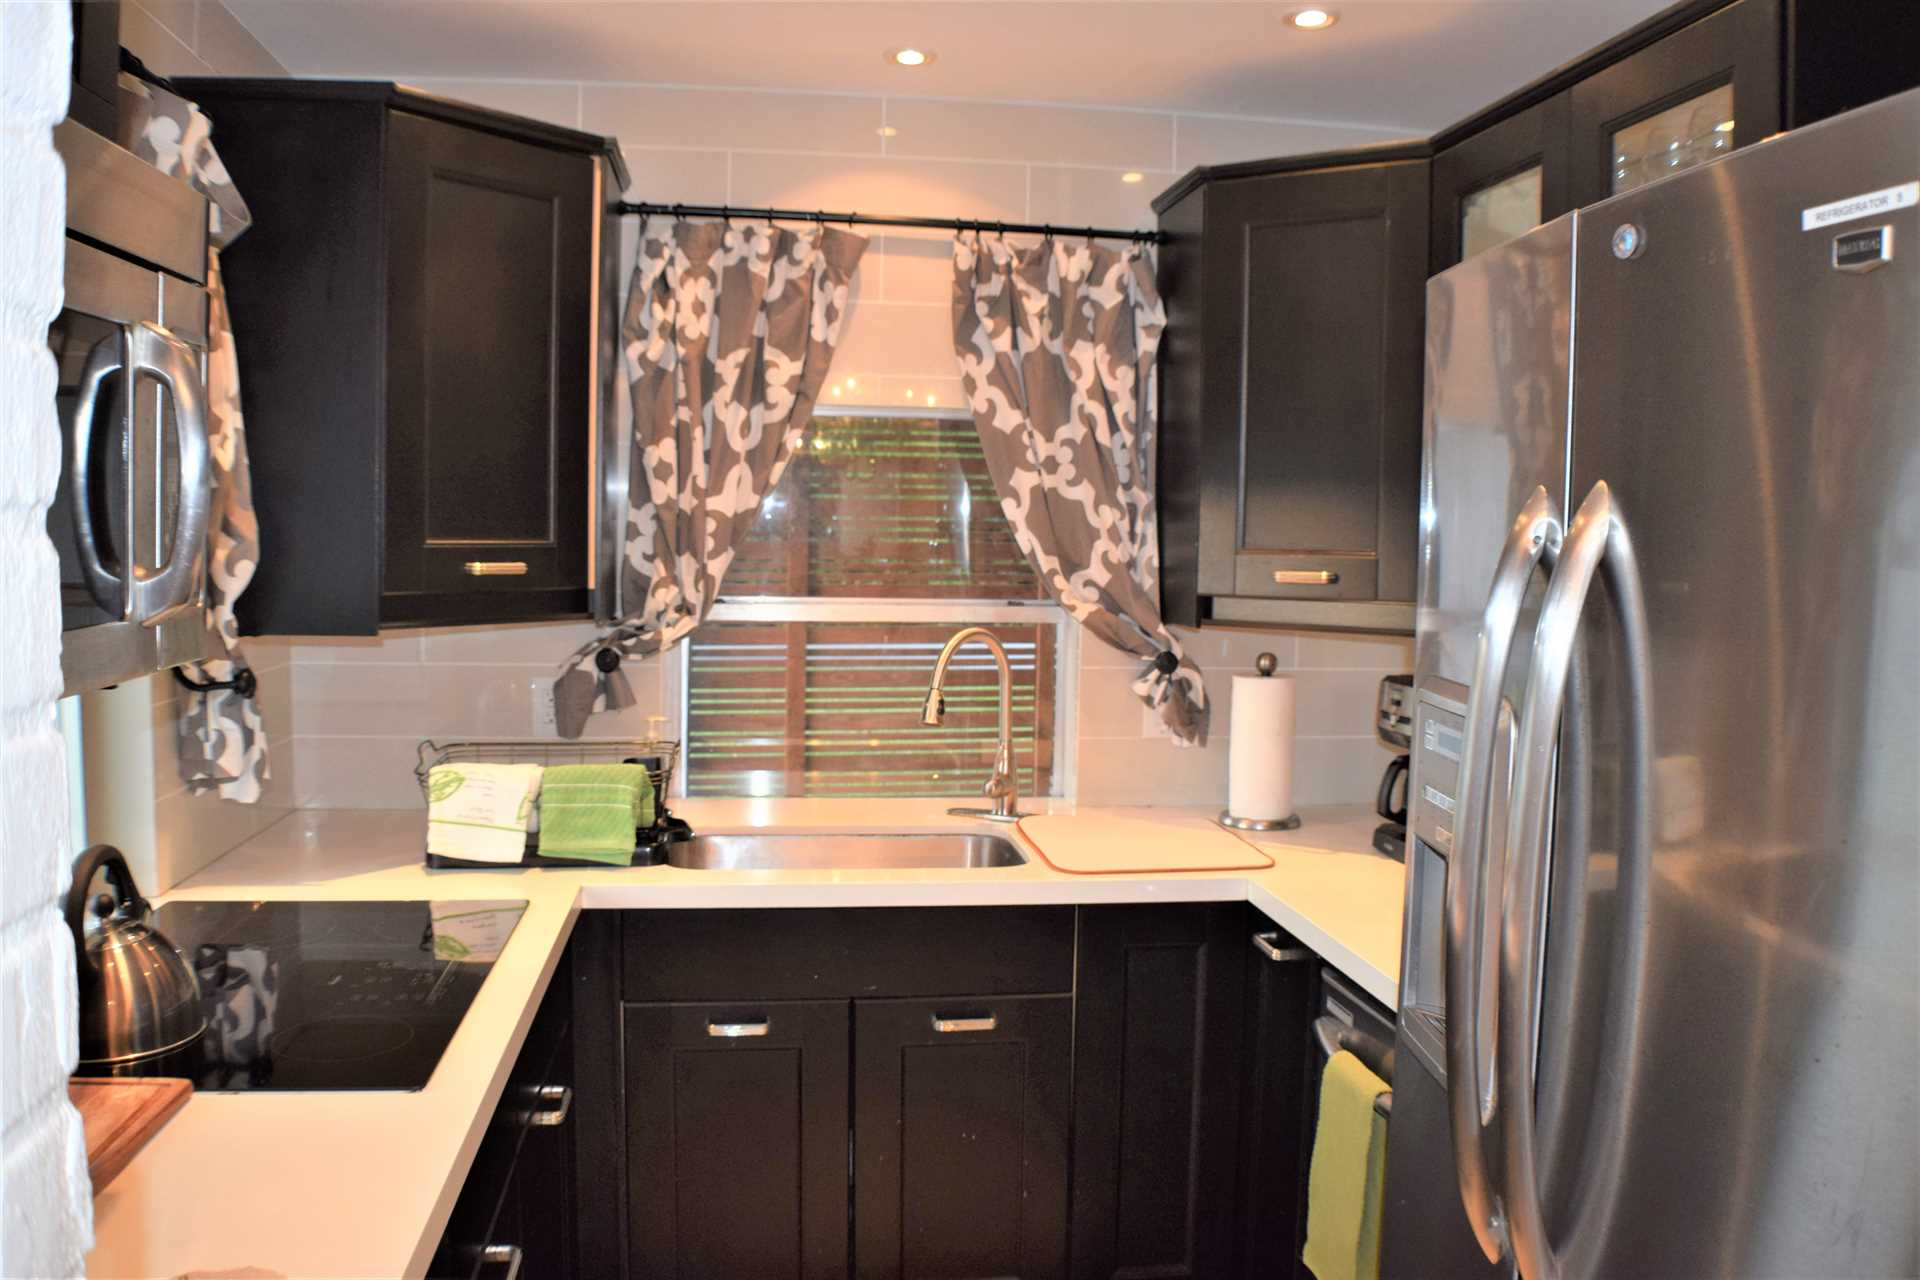 Galley kitchen has all stainless appliances.